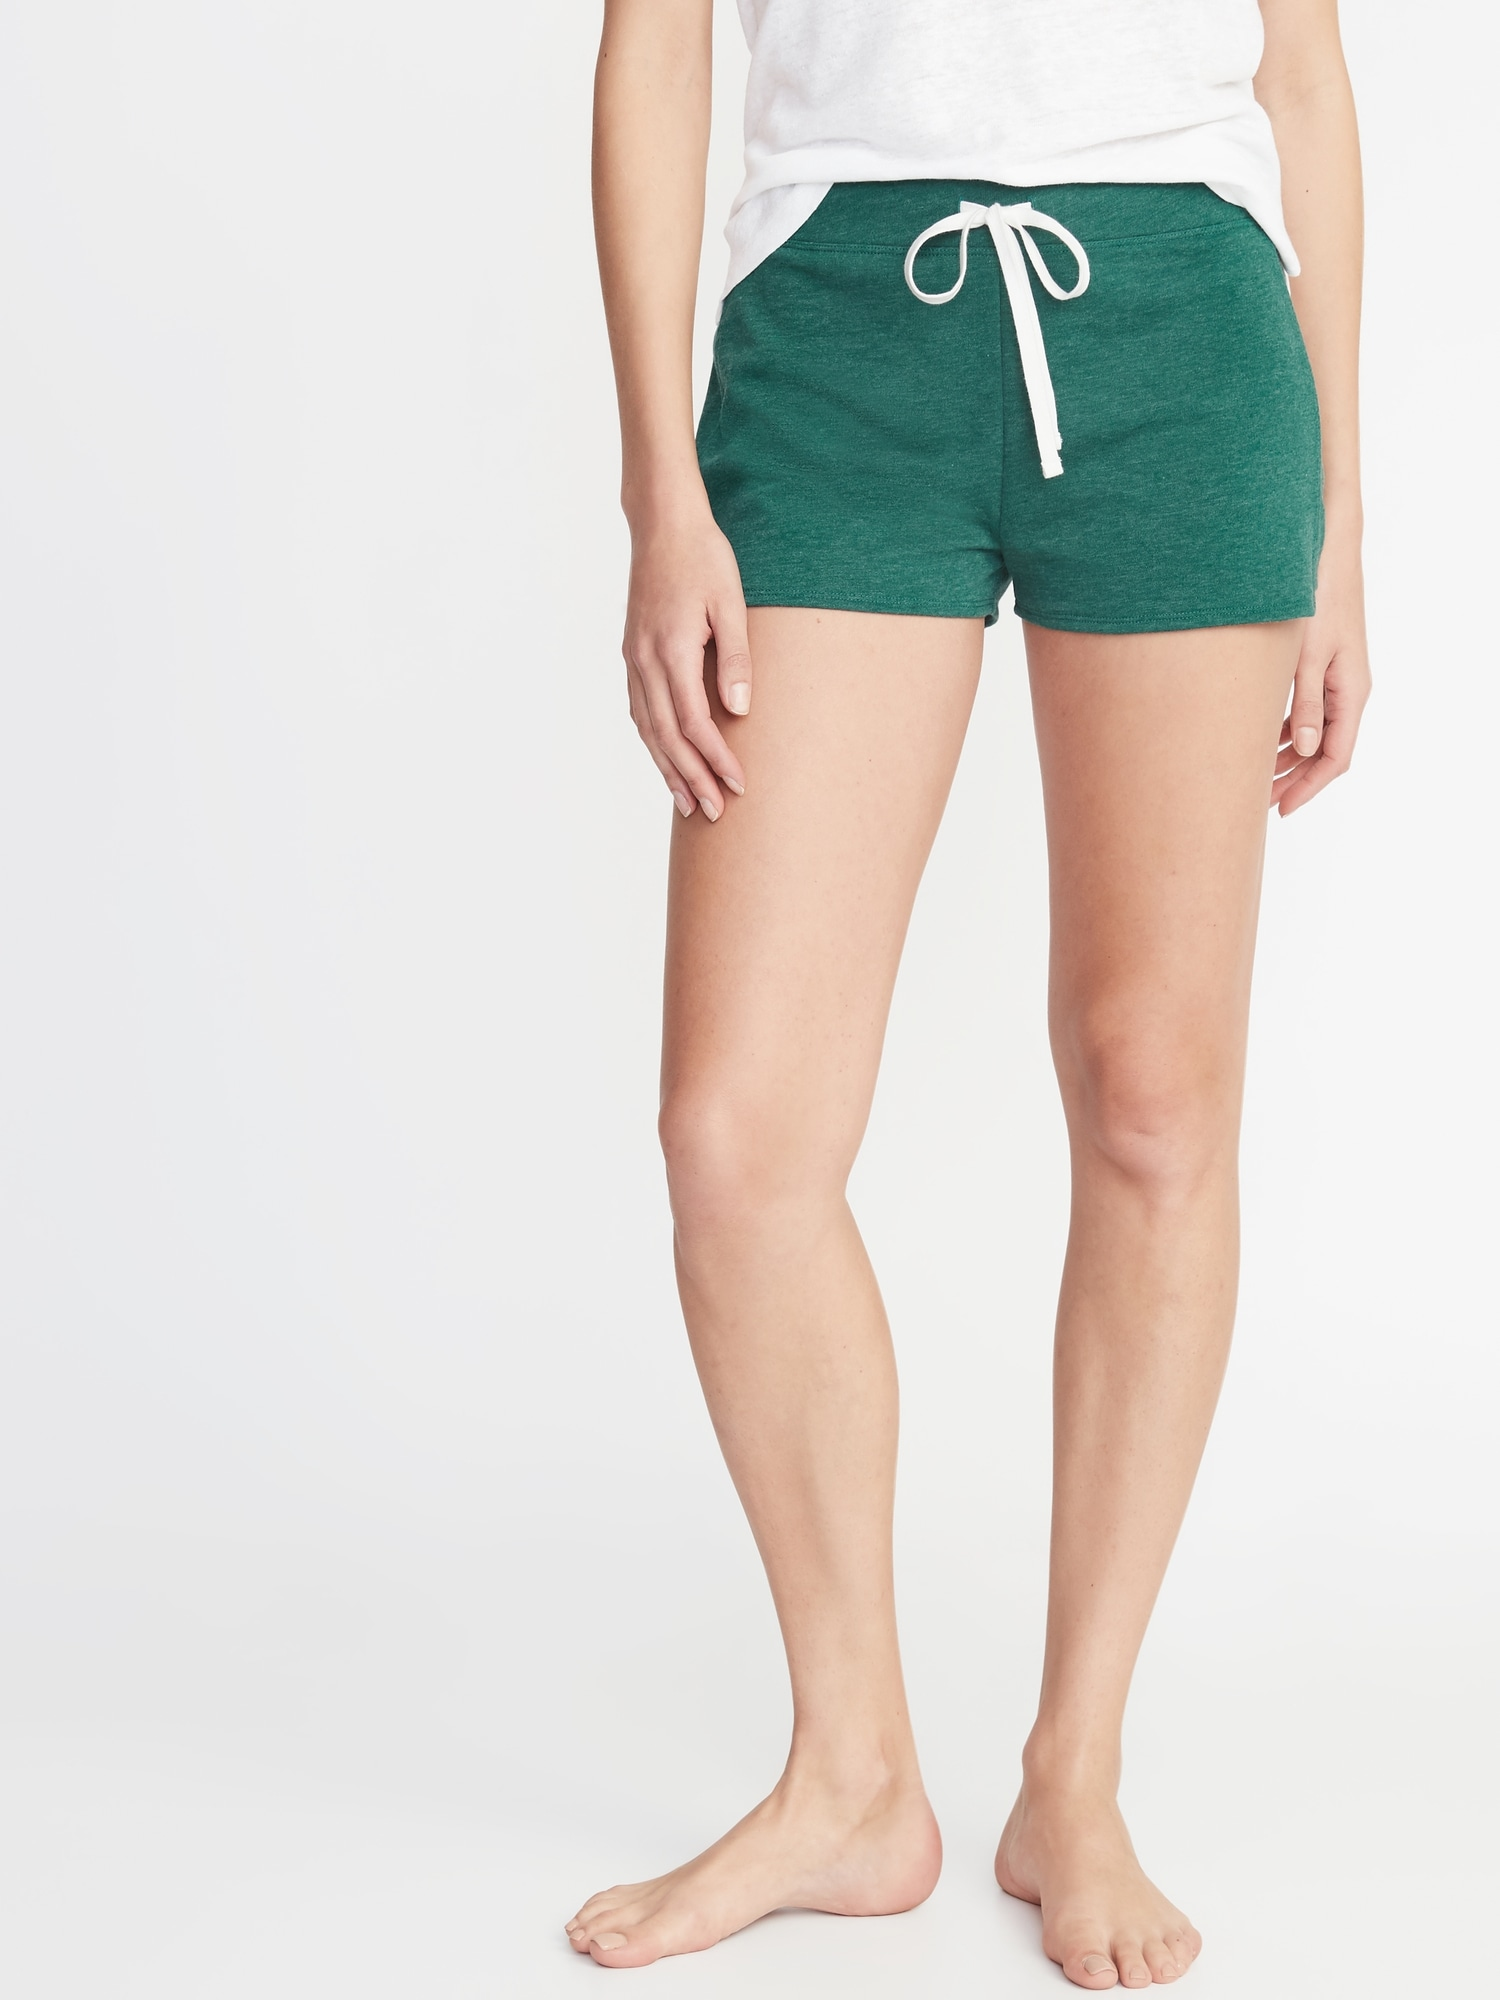 145084d7531a French Terry Shorts for Women - 2-inch inseam